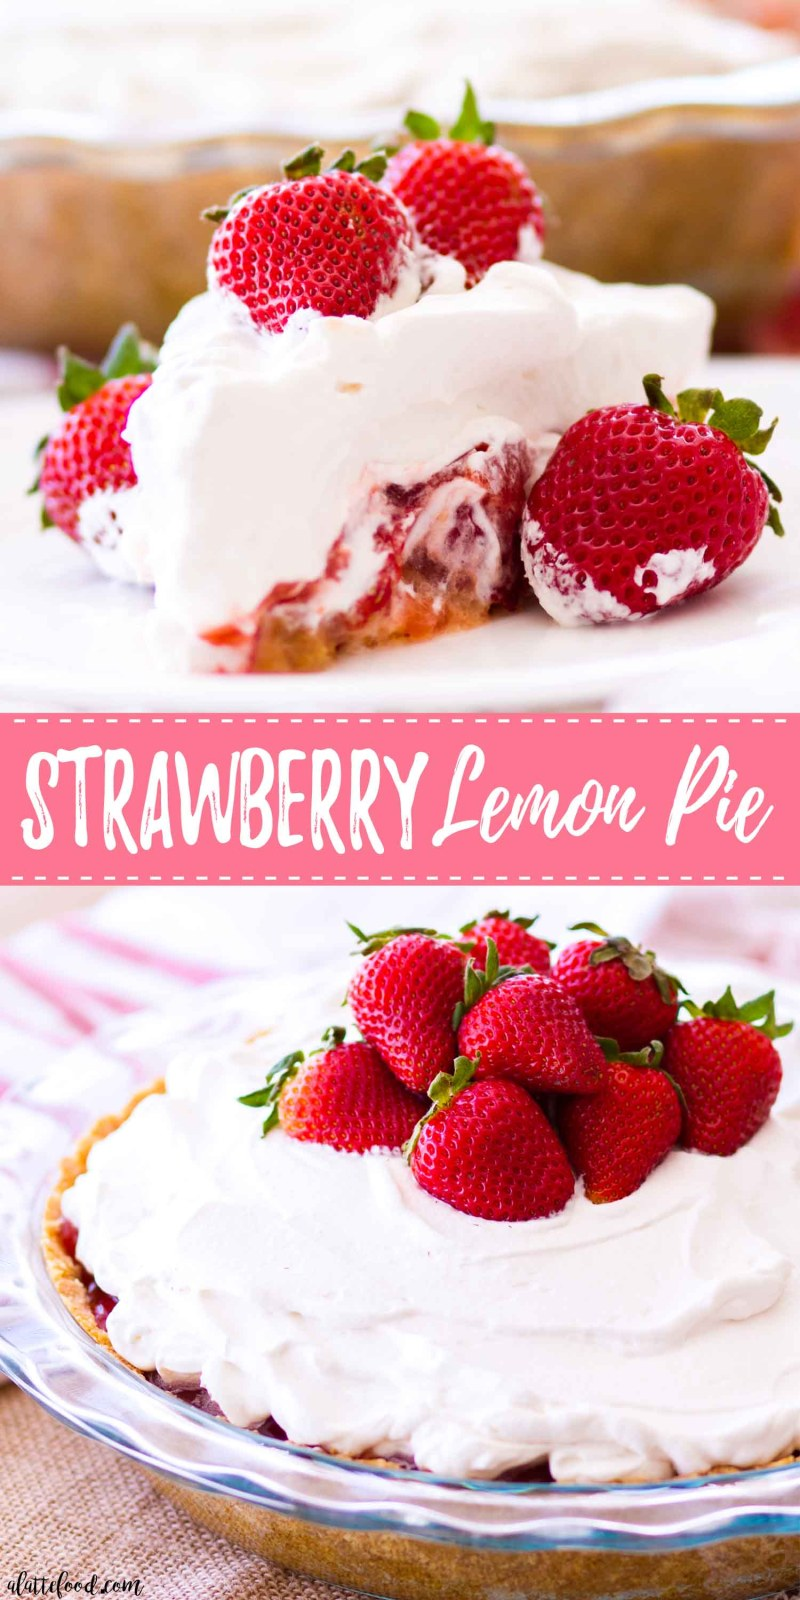 This Strawberry Lemon Pie is made with fresh strawberries, lemon curd, and a sweet homemade graham cracker crust! This strawberry pie recipe is super simple to make, sweet and tangy, and the perfect summer dessert! Plus, it's topped with a homemade whipped cream that's to die for!  easy strawberry pie recipe, no bake strawberry pie recipe